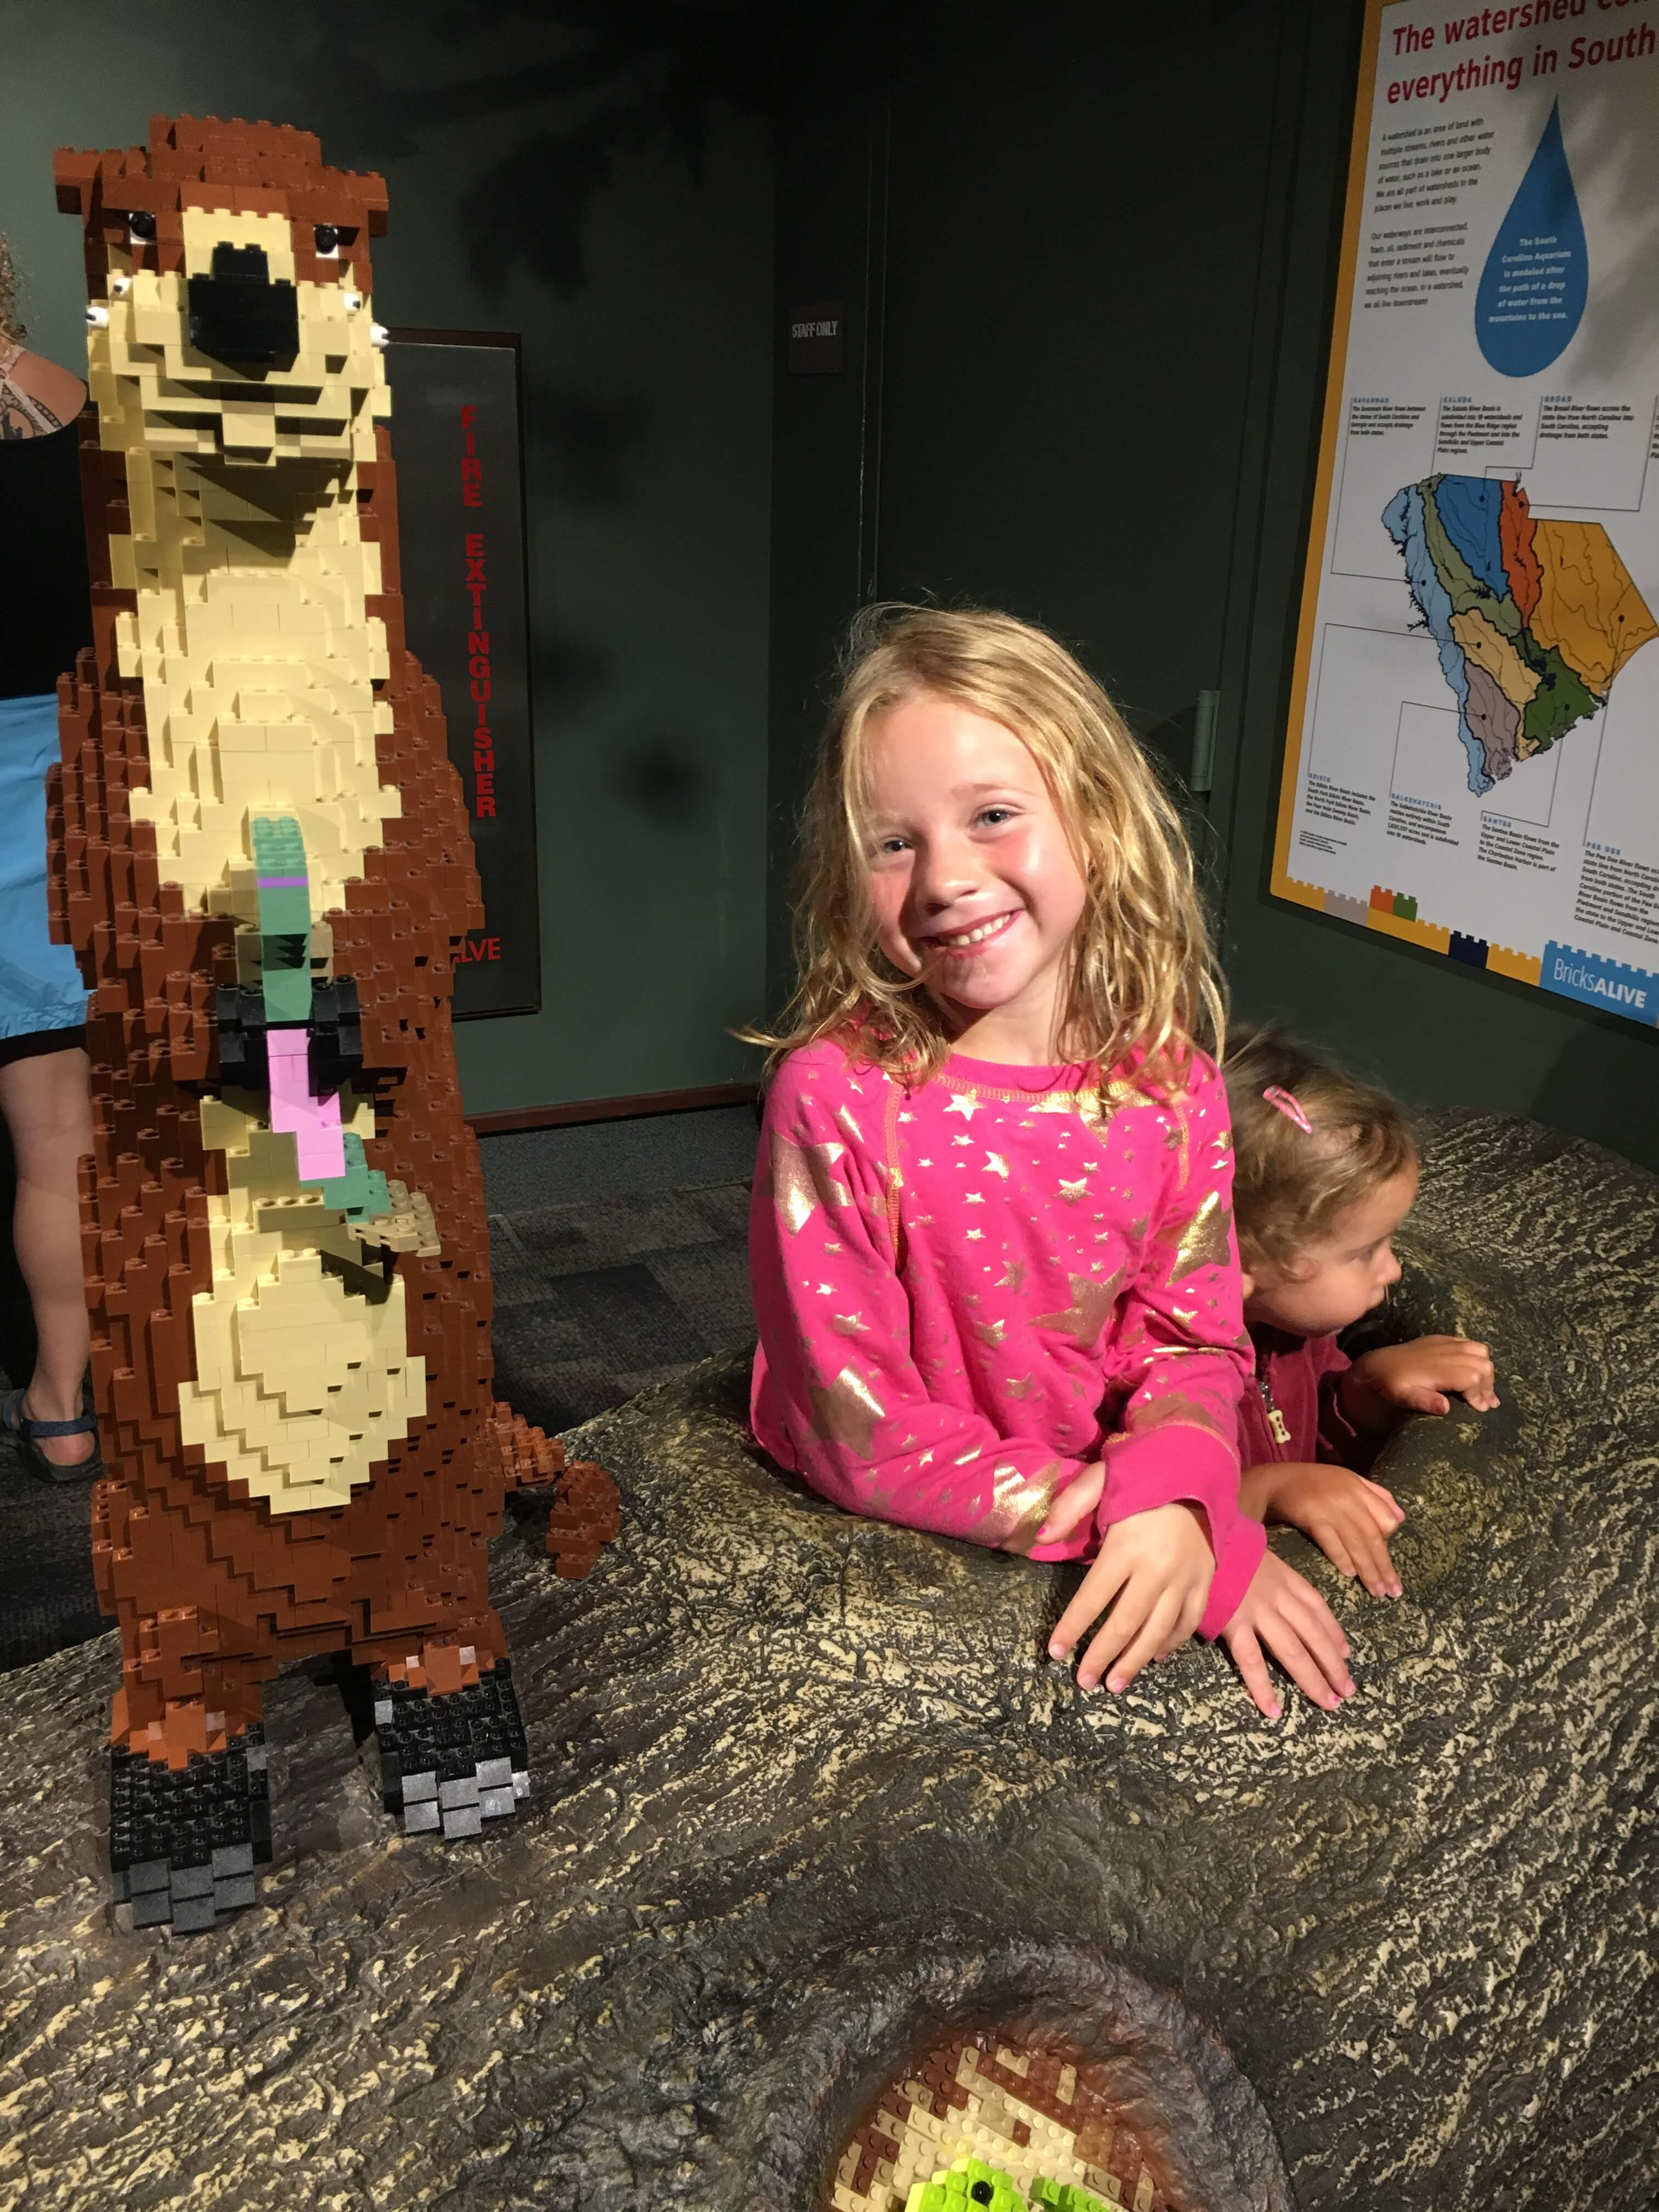 lego magic at snakes at interactive fun South Carolina Aquarium